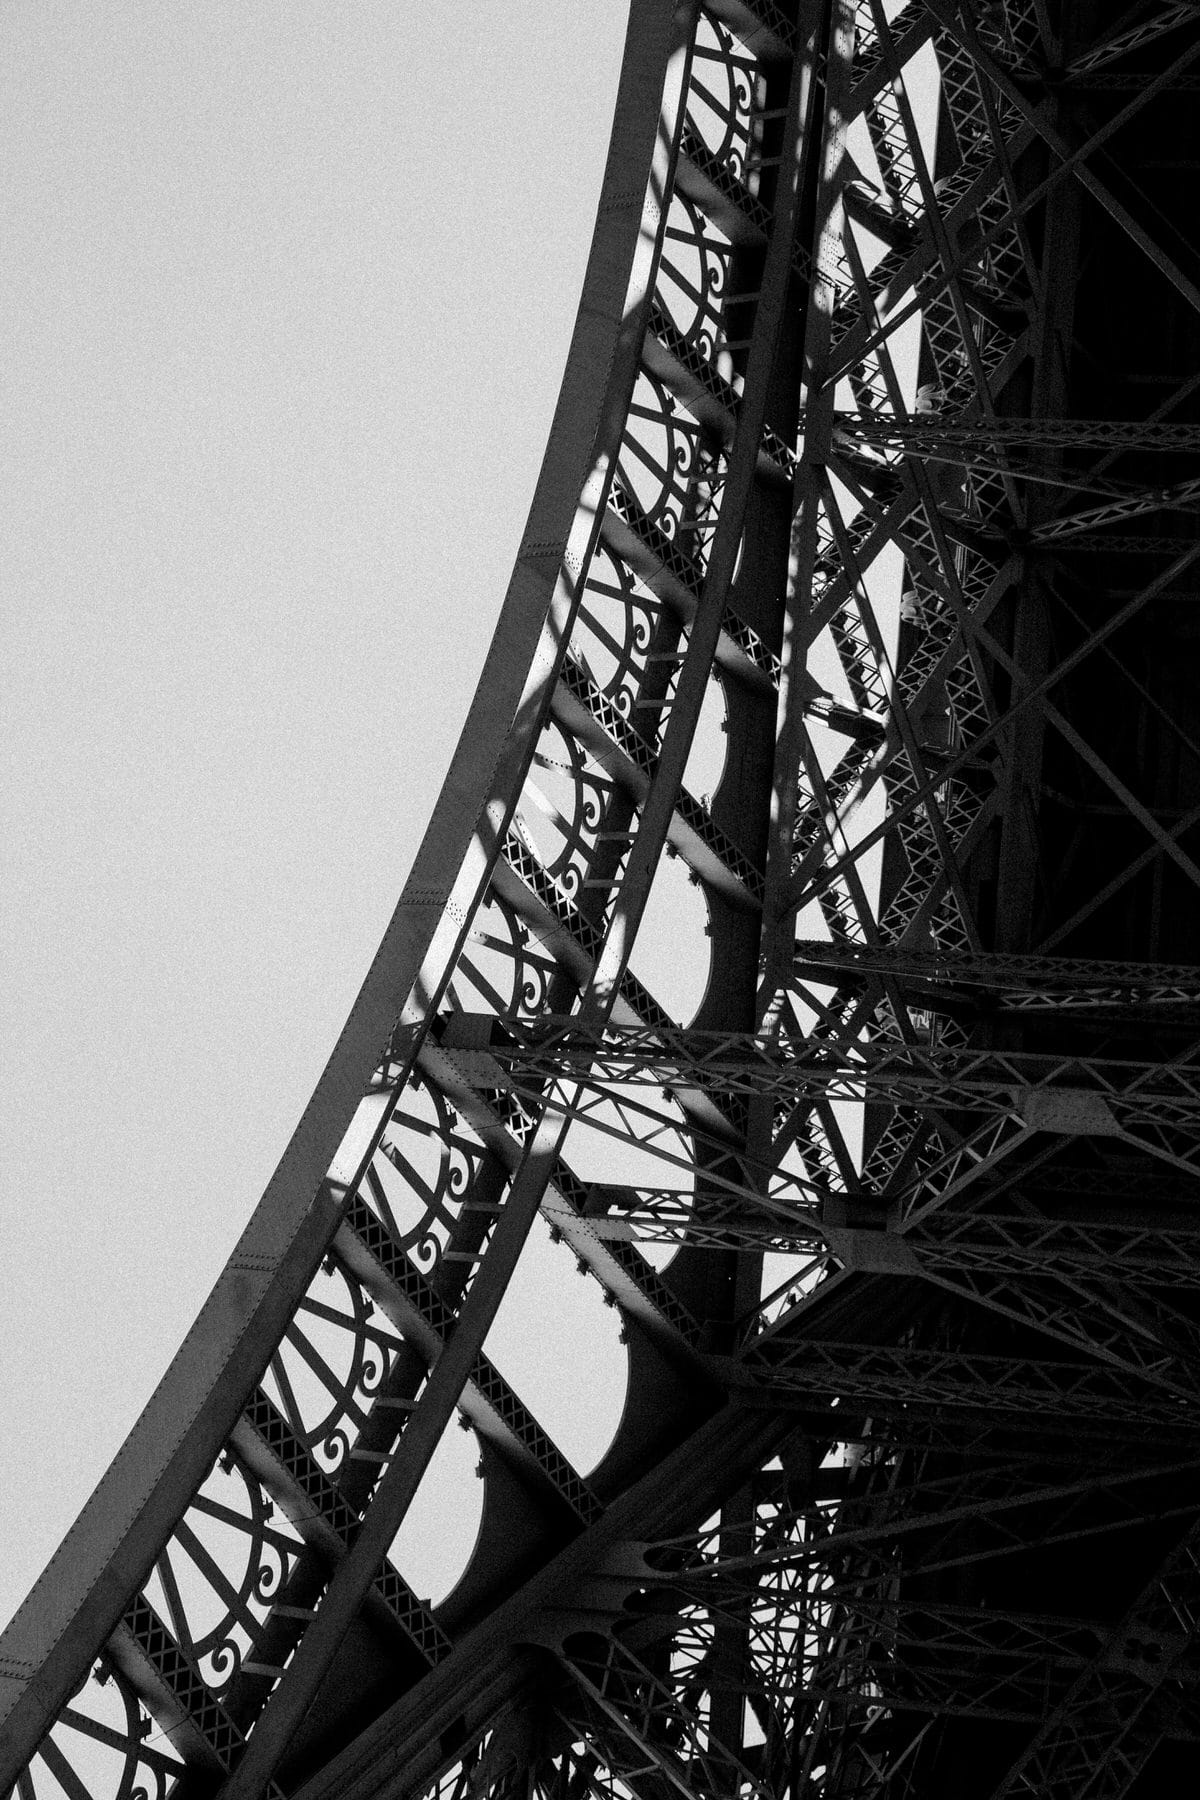 Eiffel-Tower-Paris-France-black-and-white-fine-art-photography-by-Studio-L-photographer-Laura-Schneider-_4662